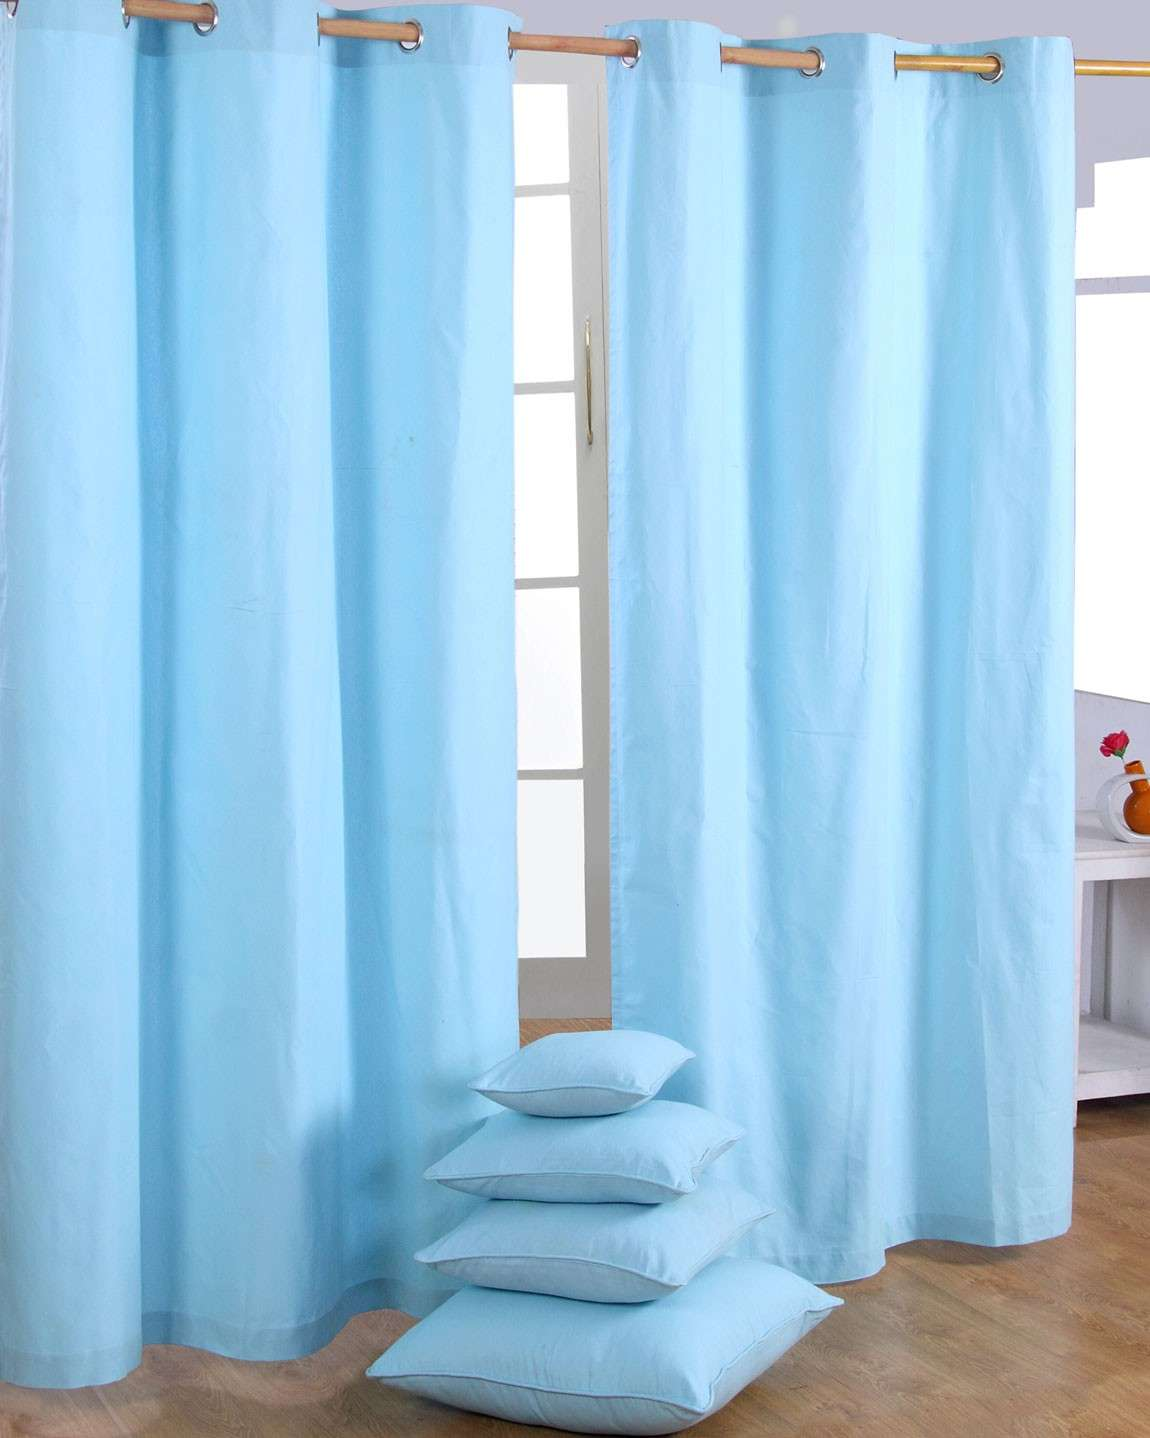 Cotton Plain Blue Ready Made Eyelet Curtain Pair Homescapes